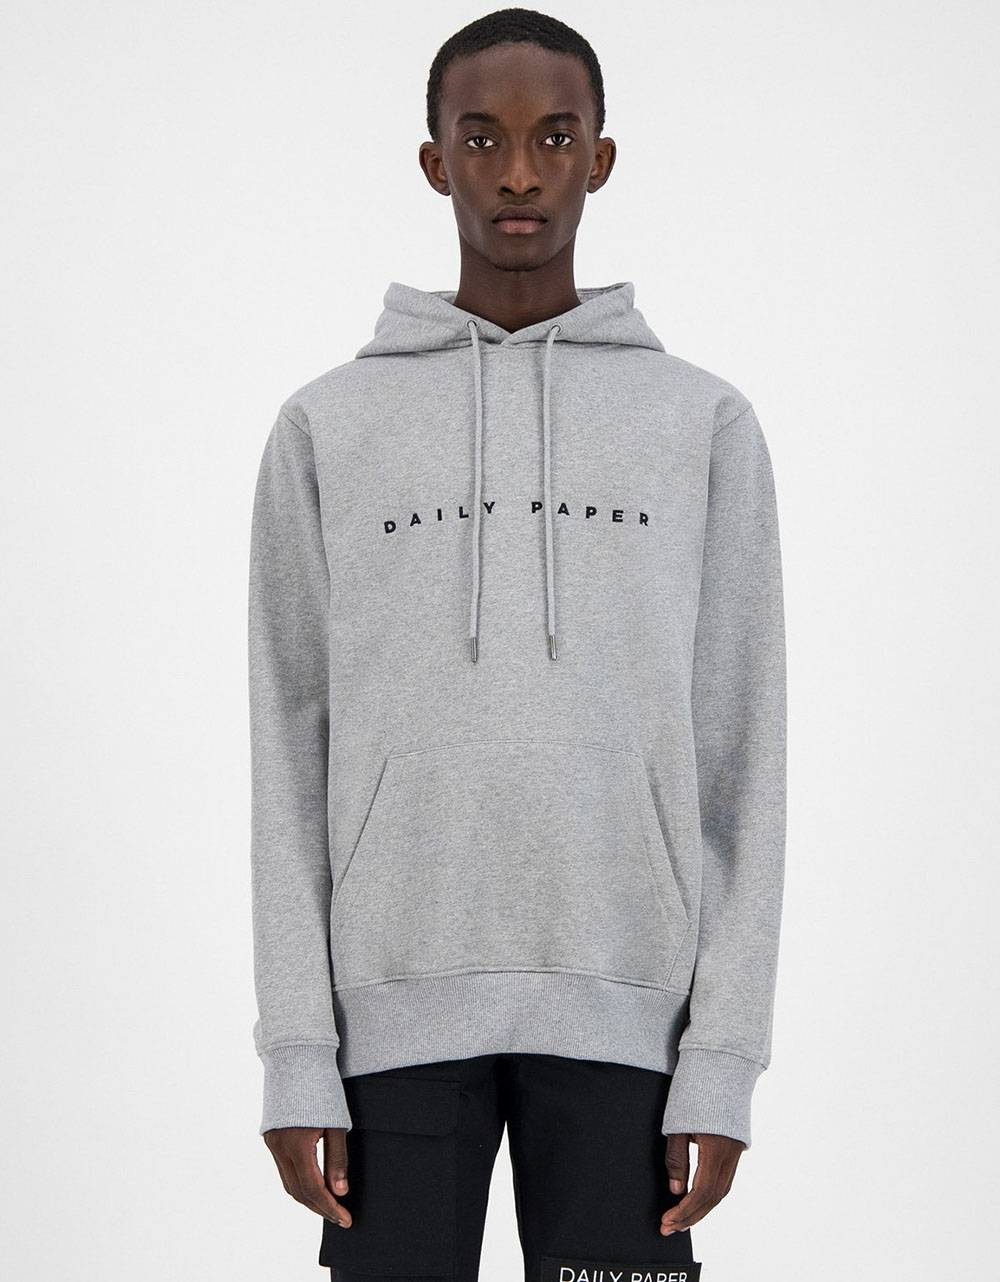 Daily Paper Alias Hoodie - Grey/Black DAILY PAPER Sweater 89,34€